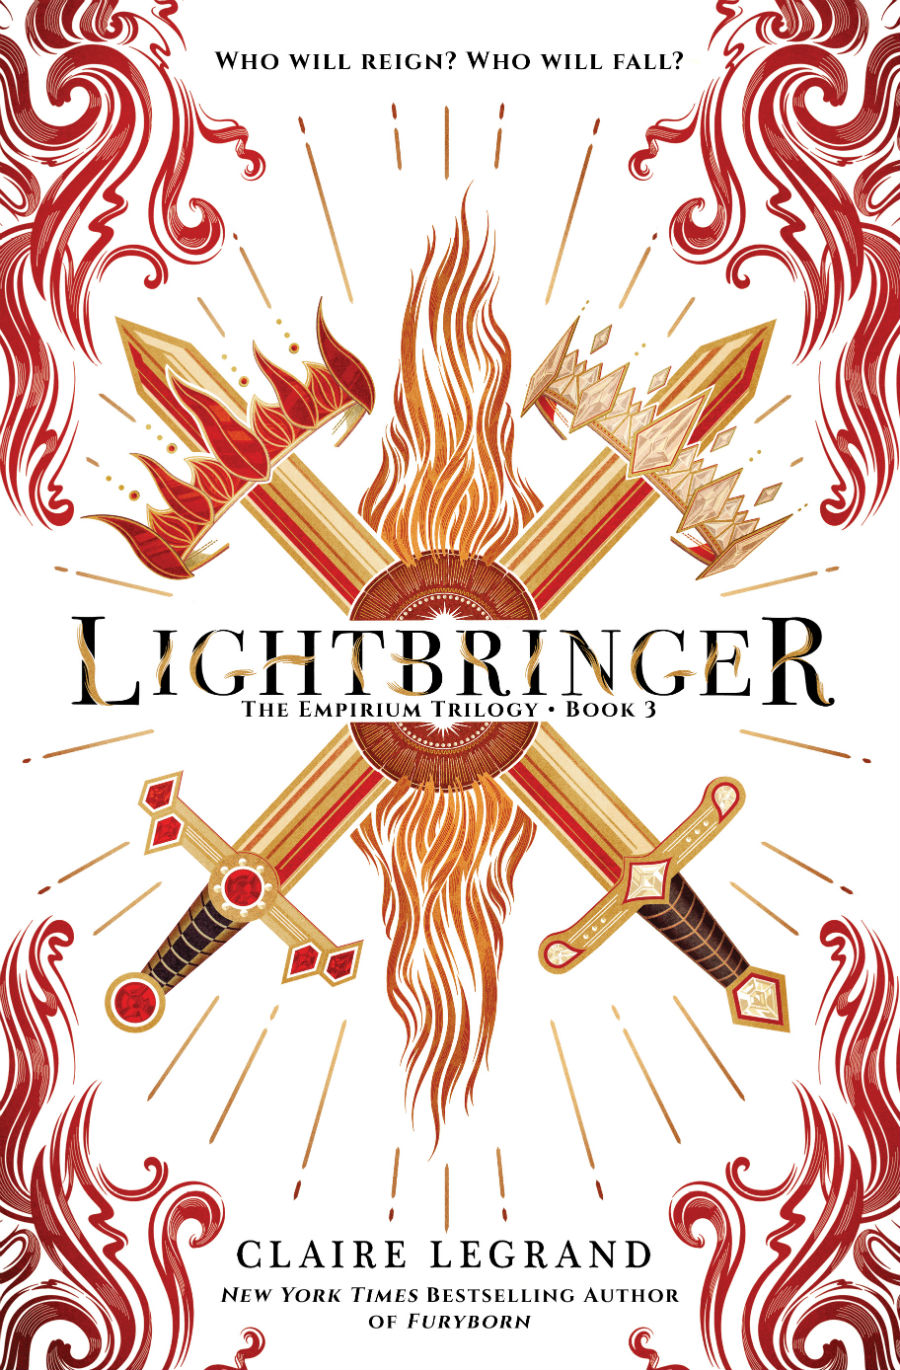 Lightbringer-cover-reveal.jpg